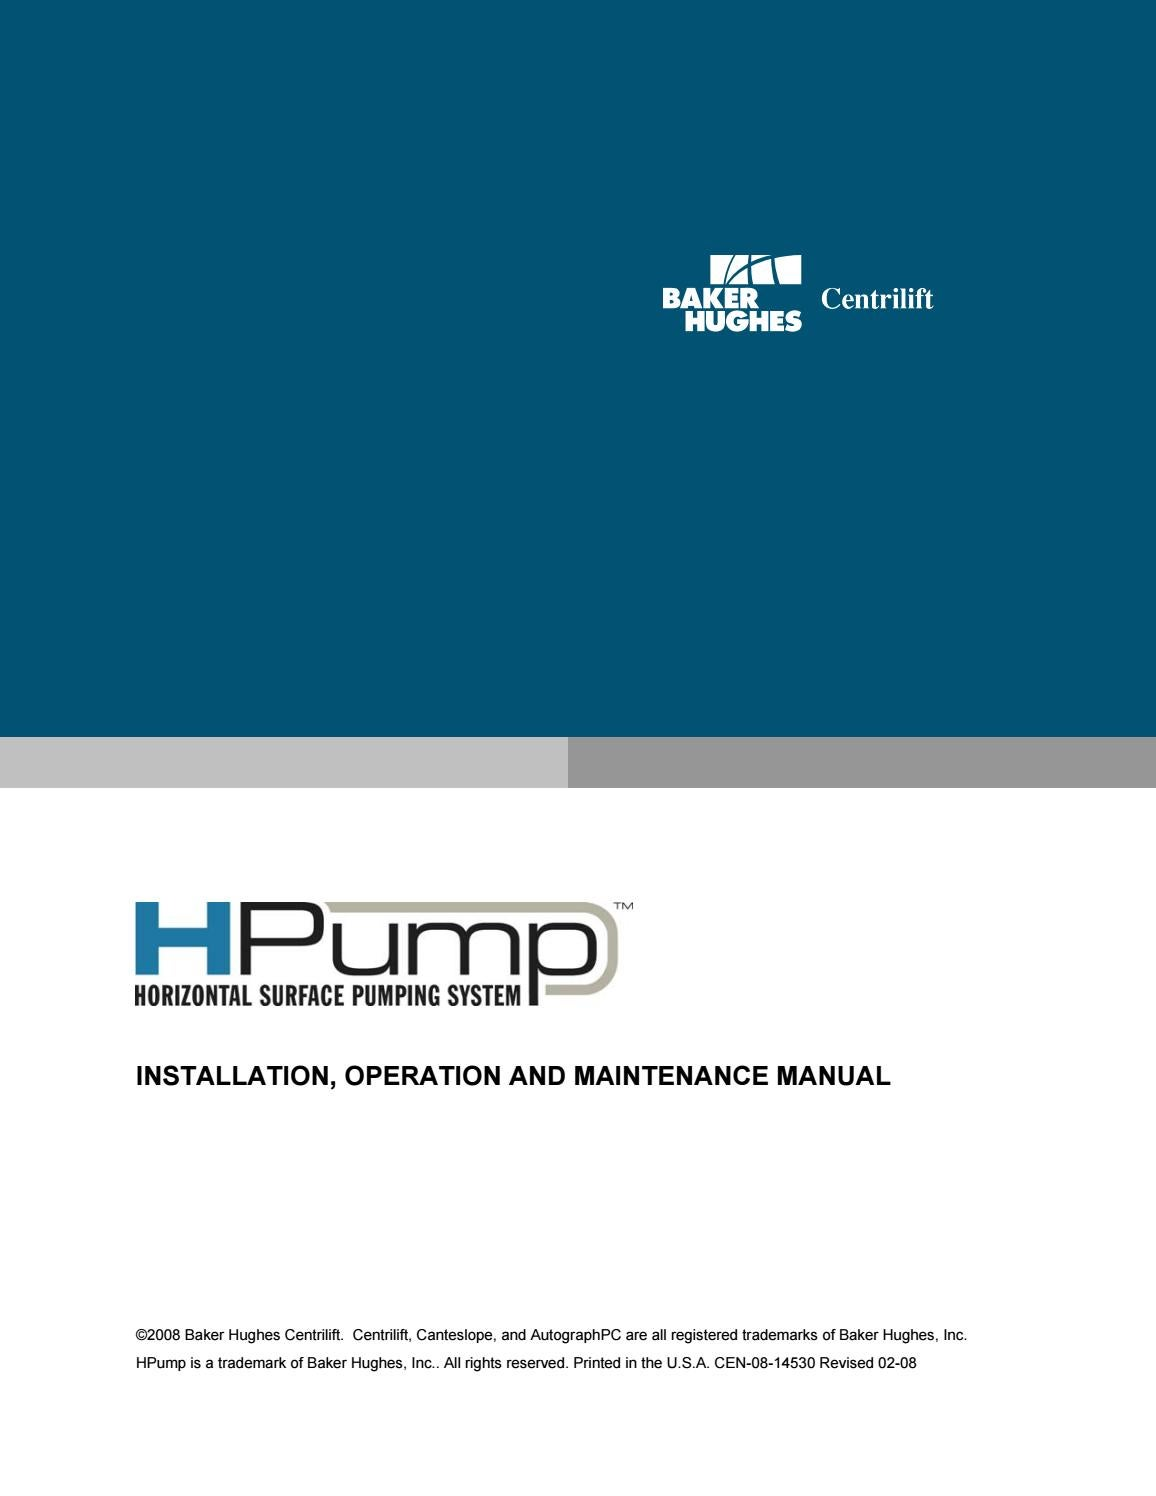 Baker Hughes Hpump Operation And Maintenance Manual By Jorge Issuu Relays Class 8501 8 Pin Wiring Diagram